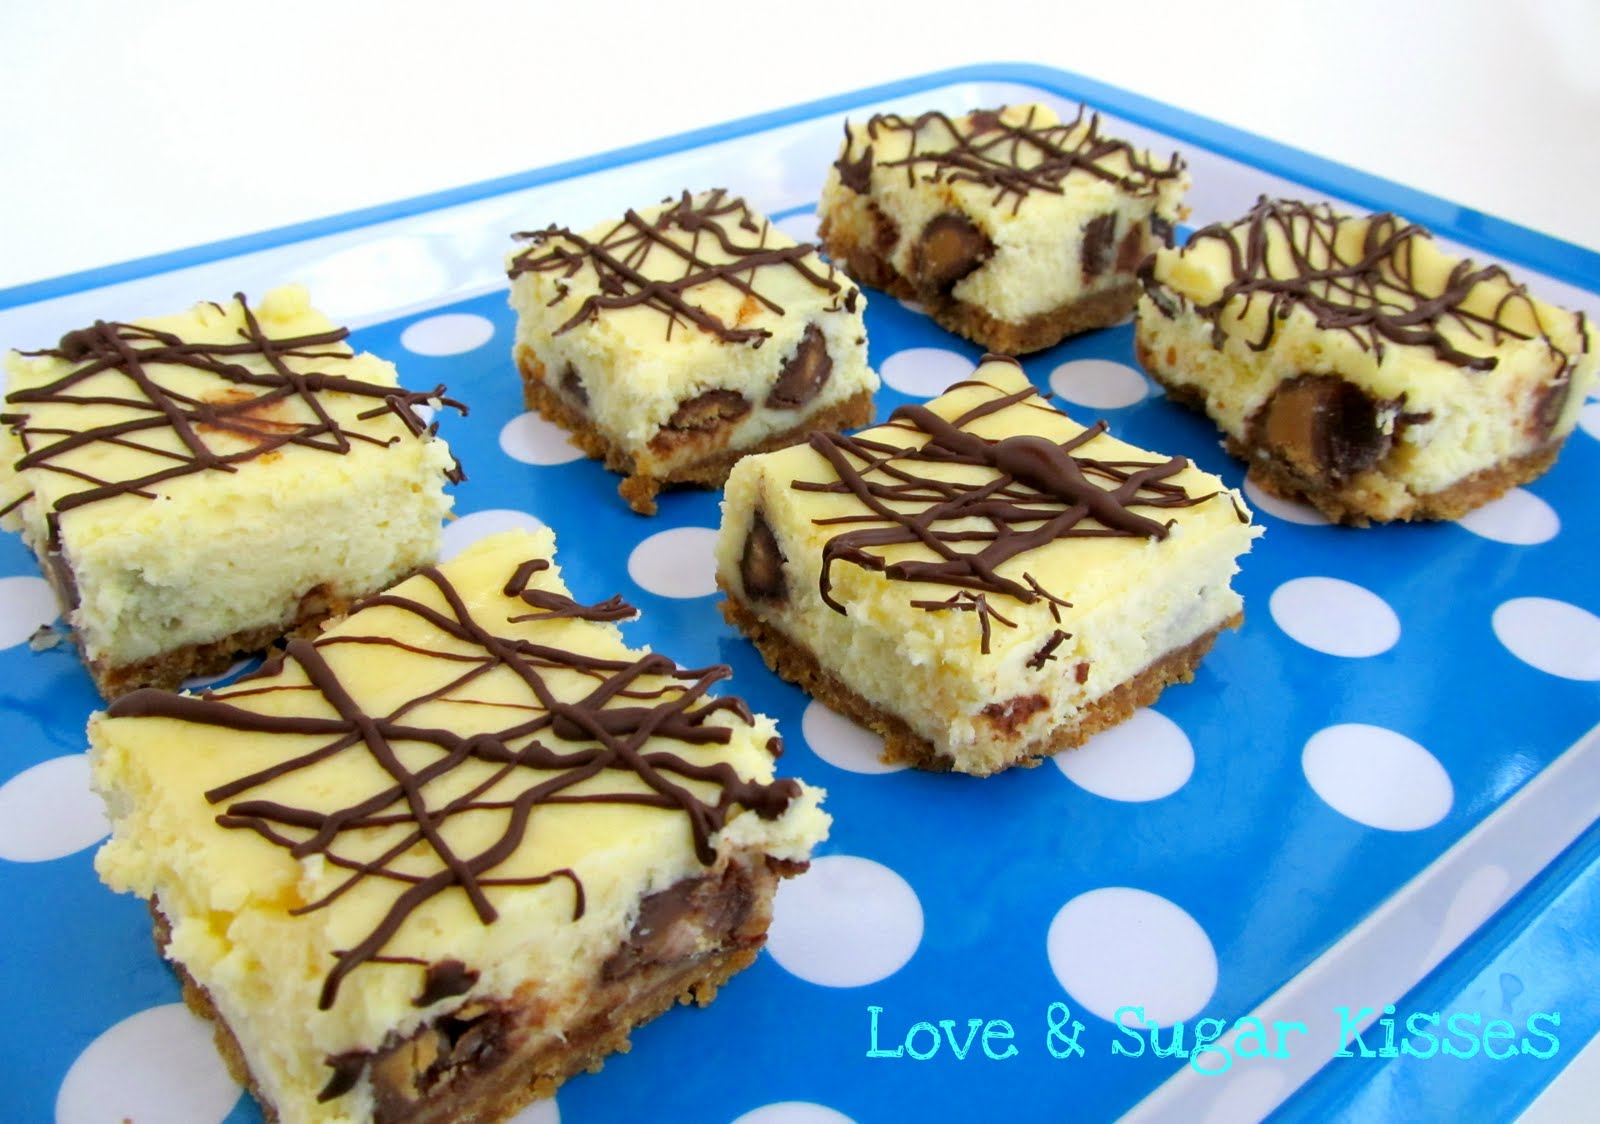 Love & Sugar Kisses: Peanut Butter Cup Cheesecake Bars